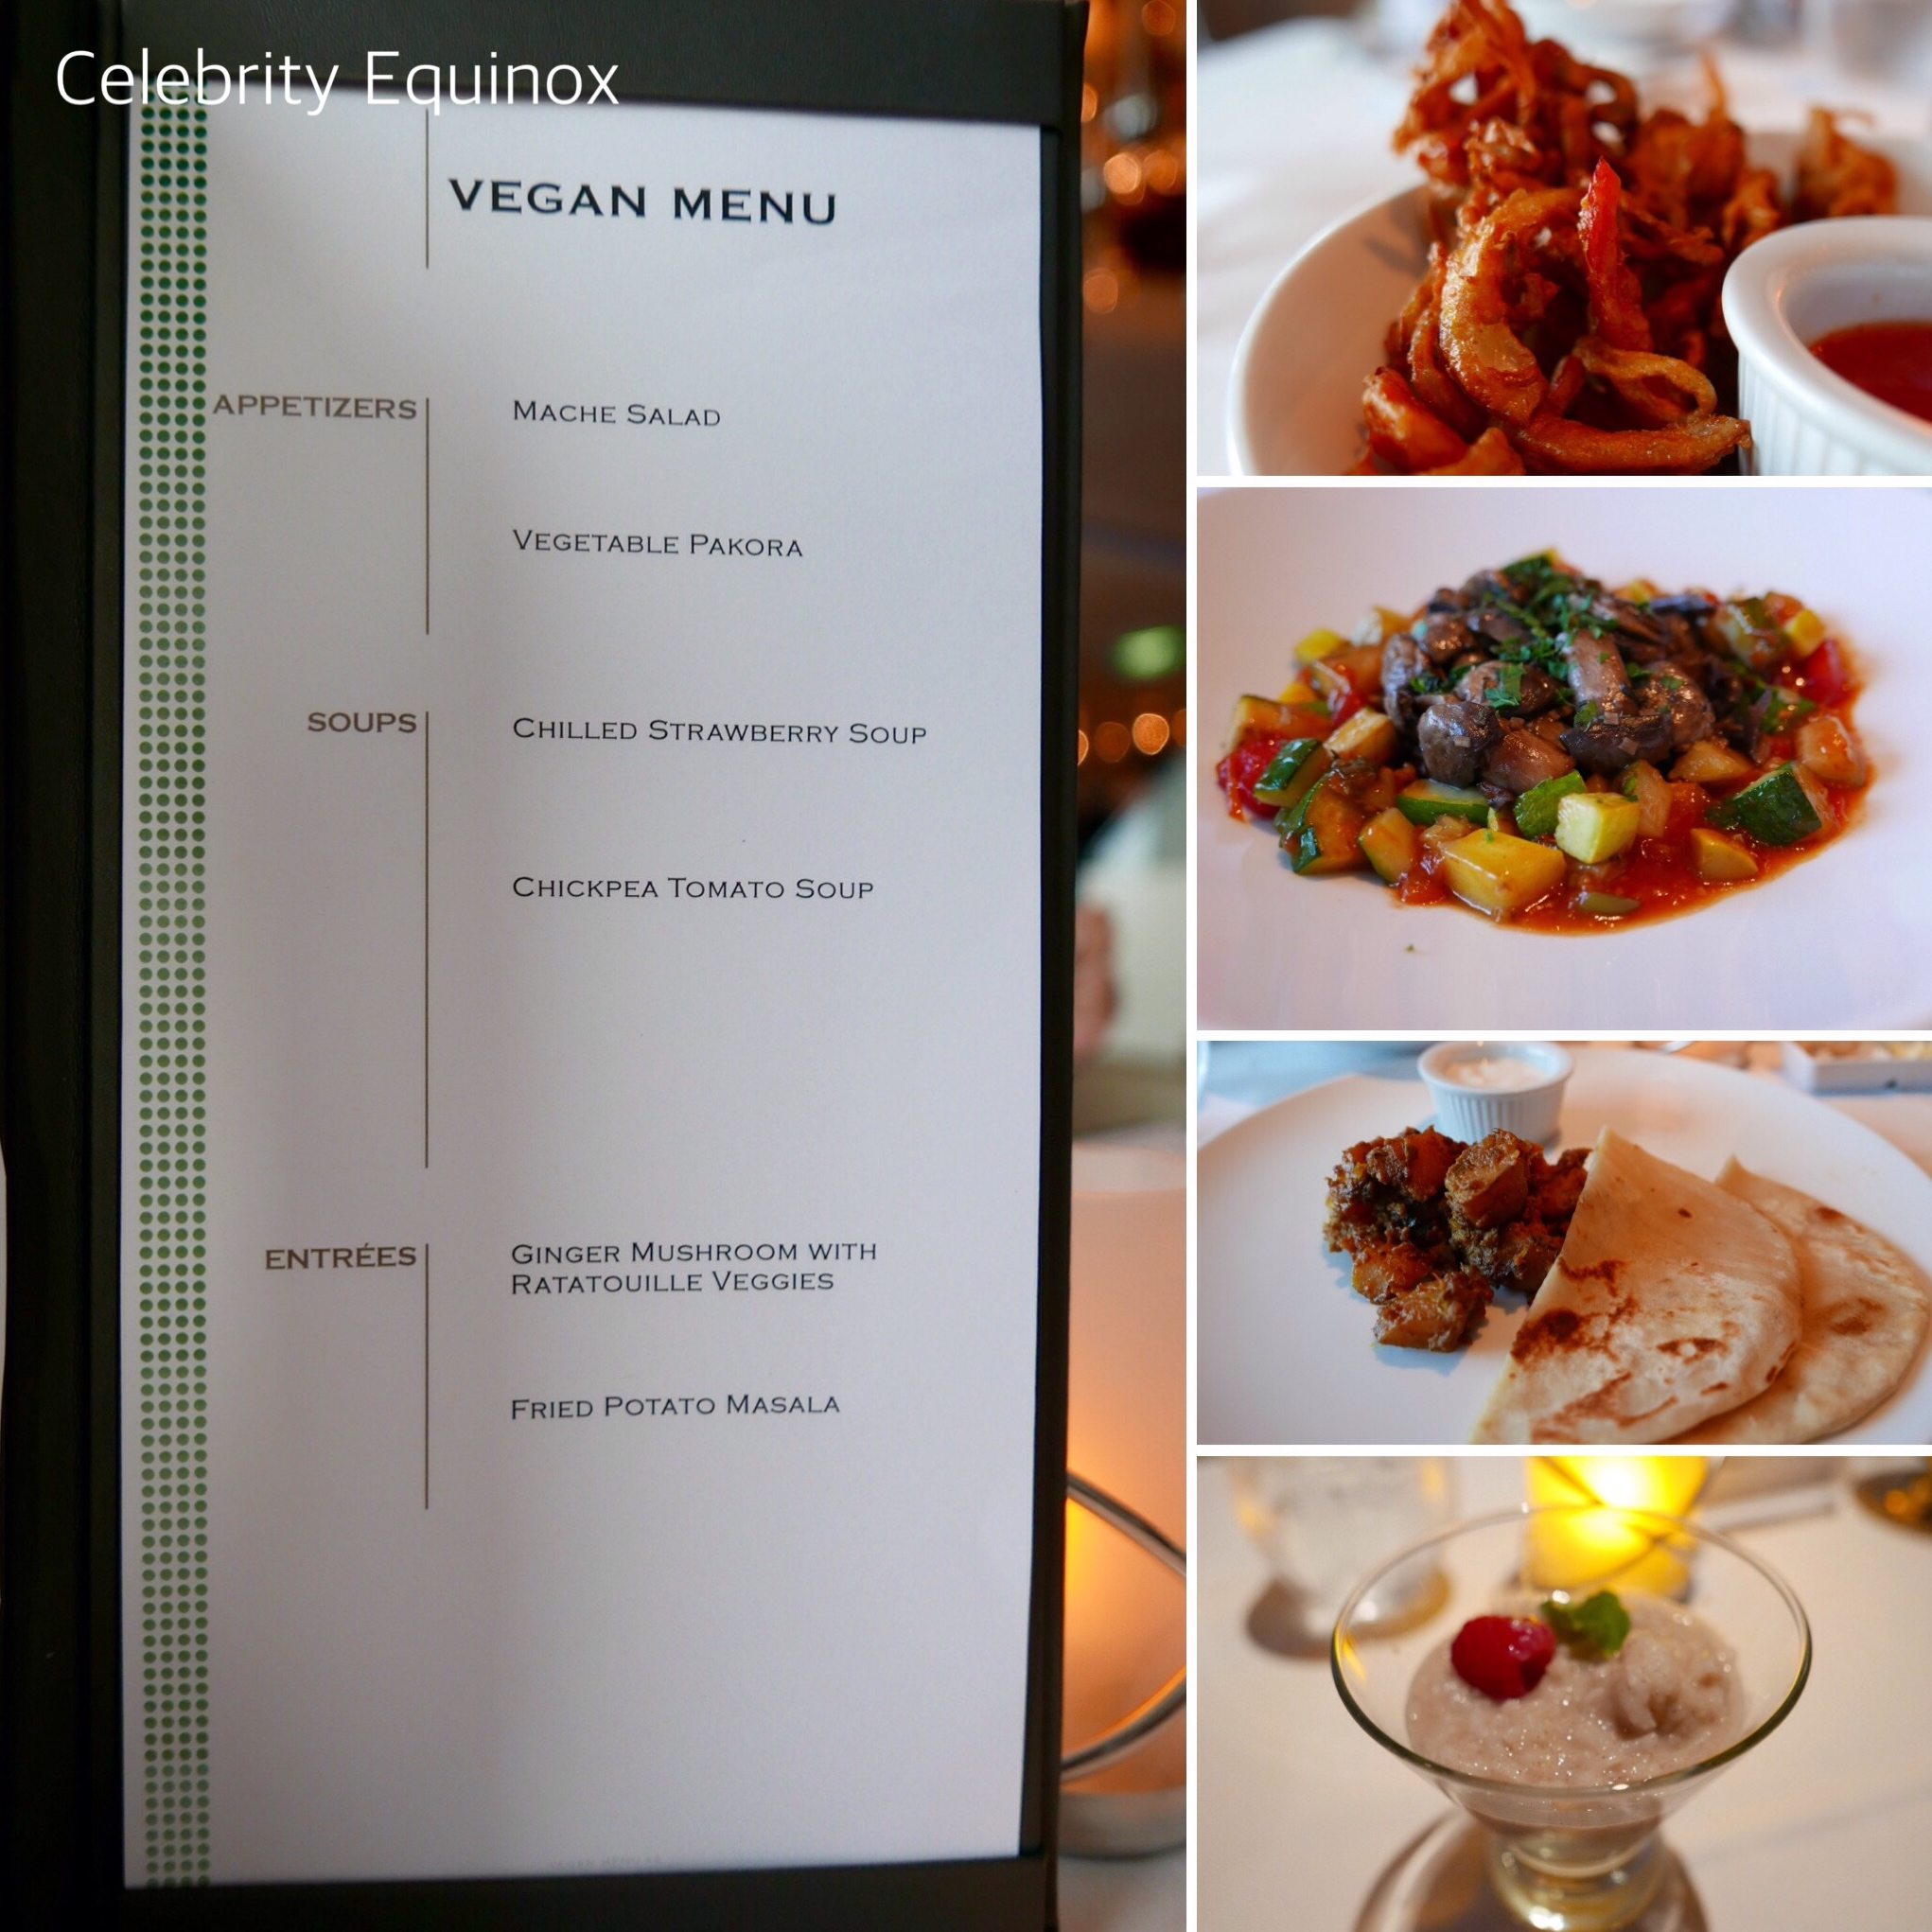 Celebrity Cruises vegan menu in dining room